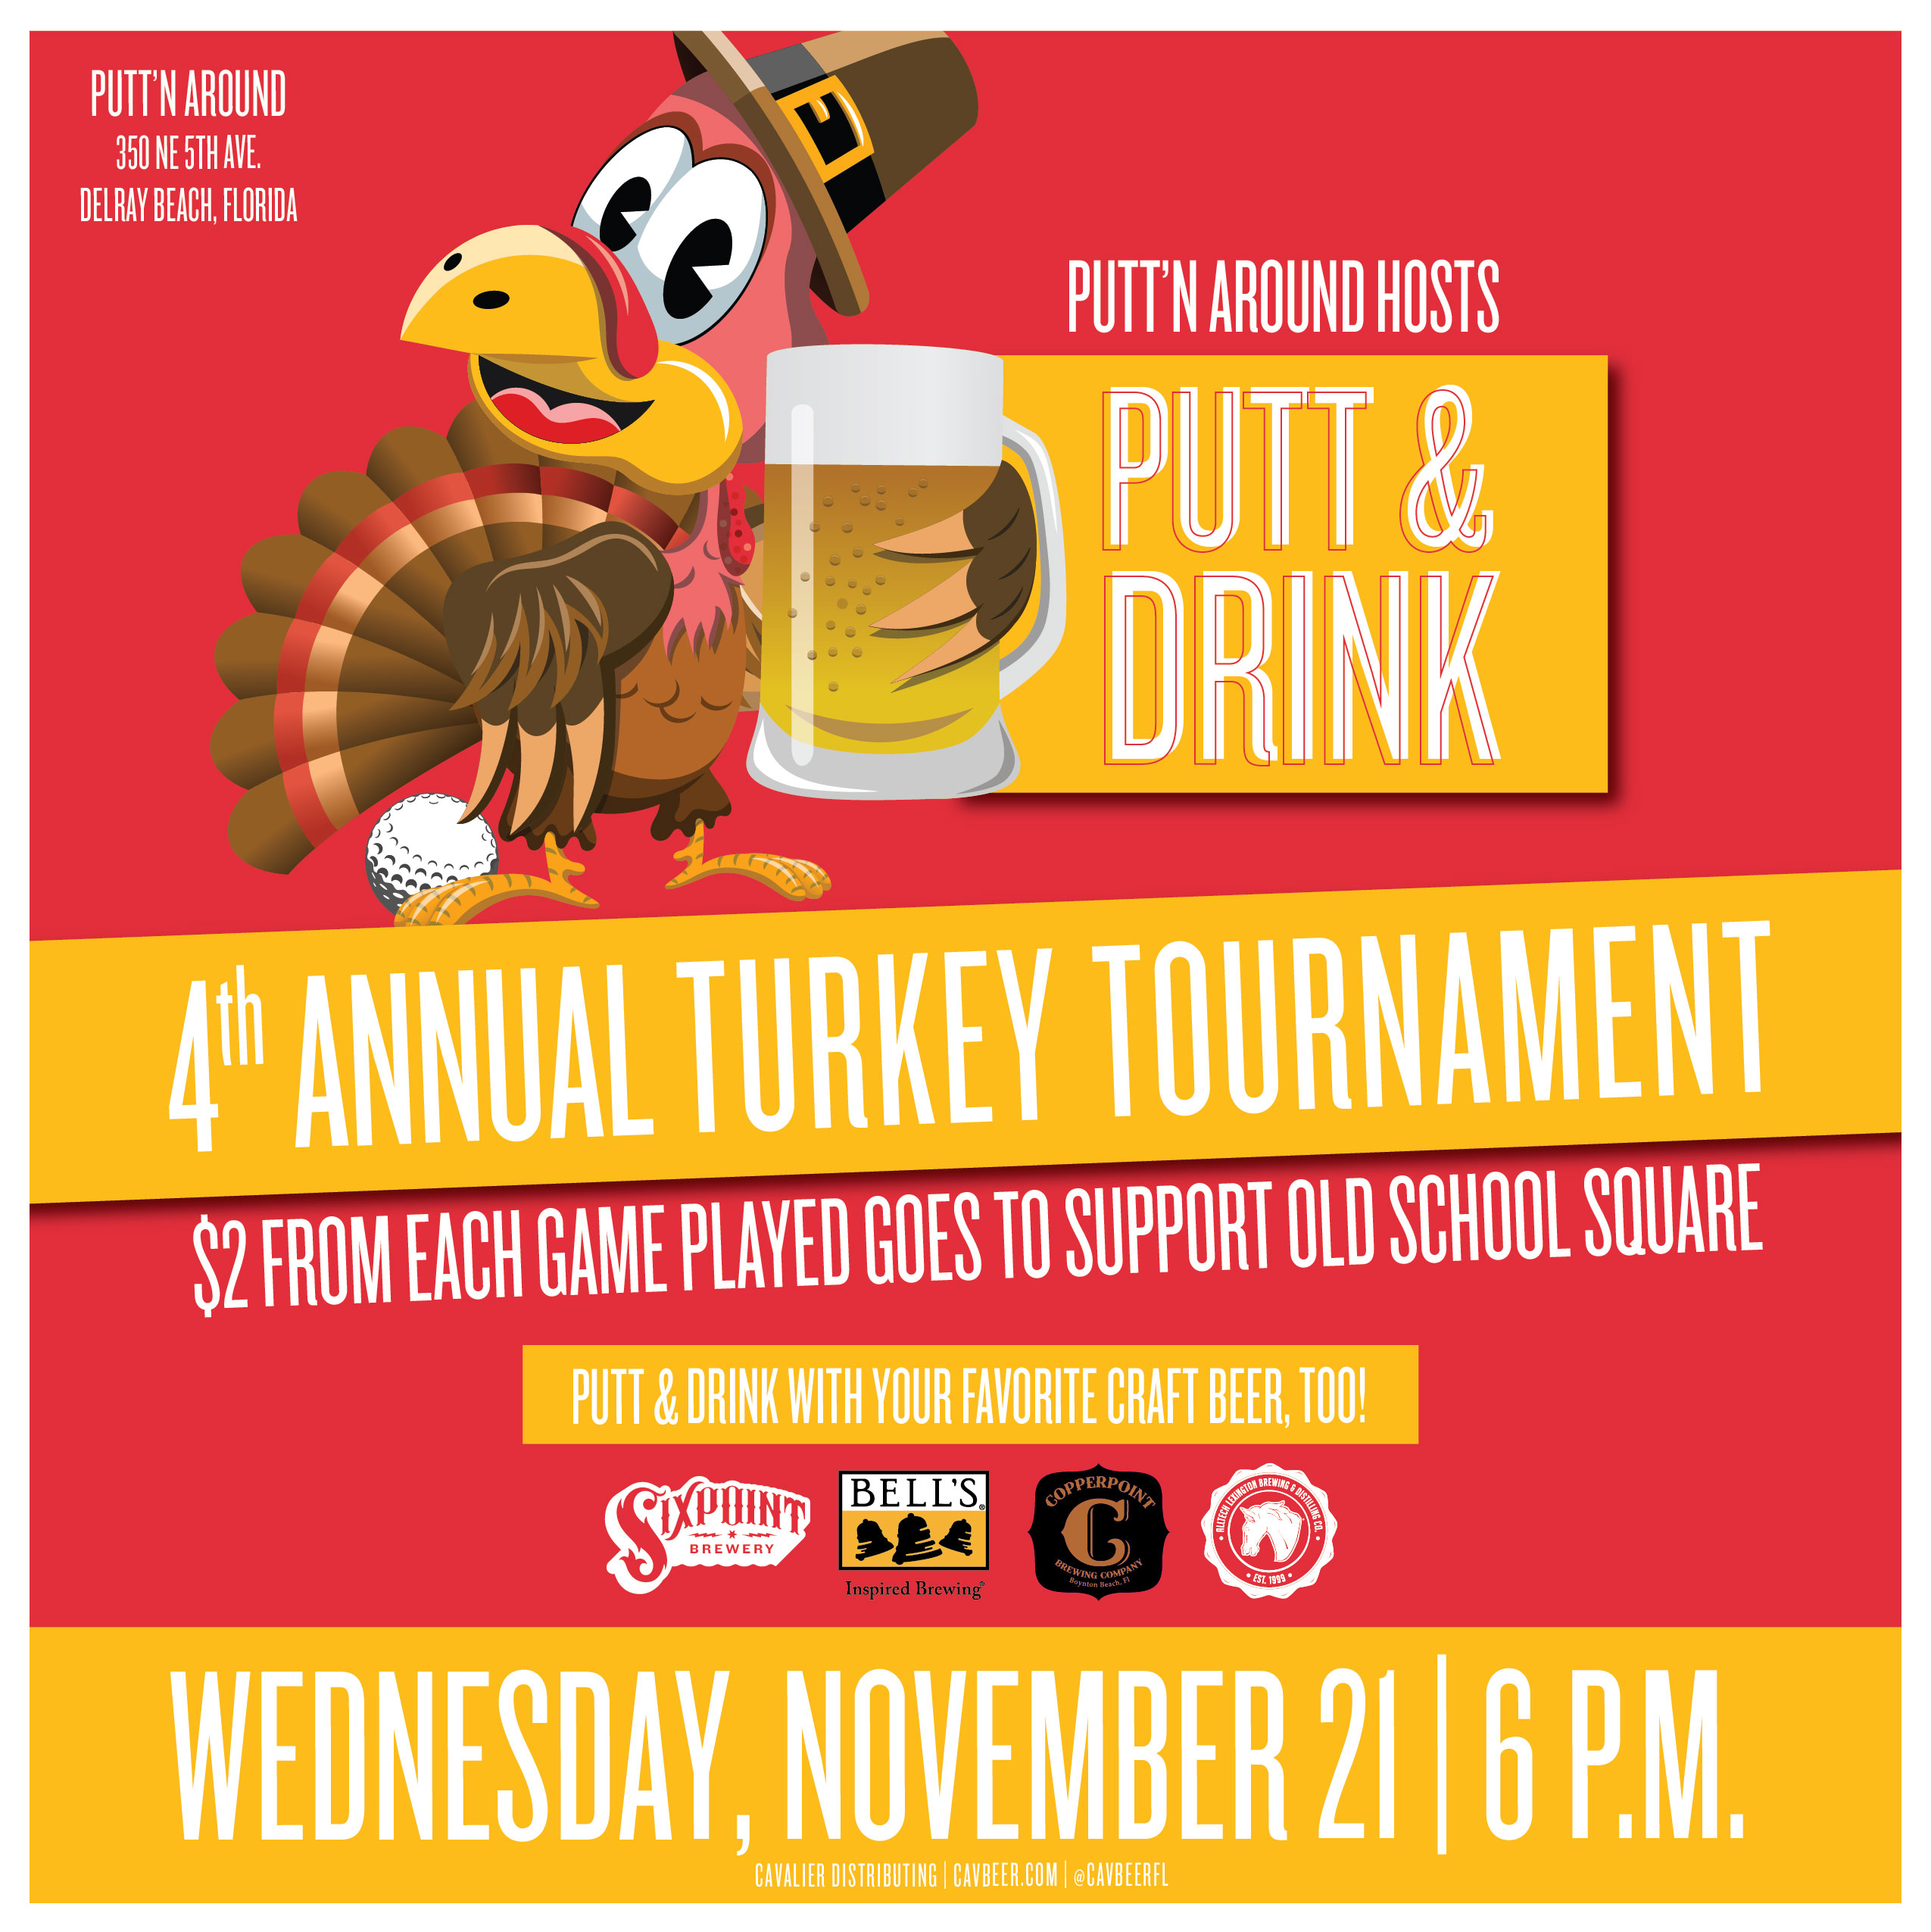 4th Annual Turkey Tournament at Putt'n Around